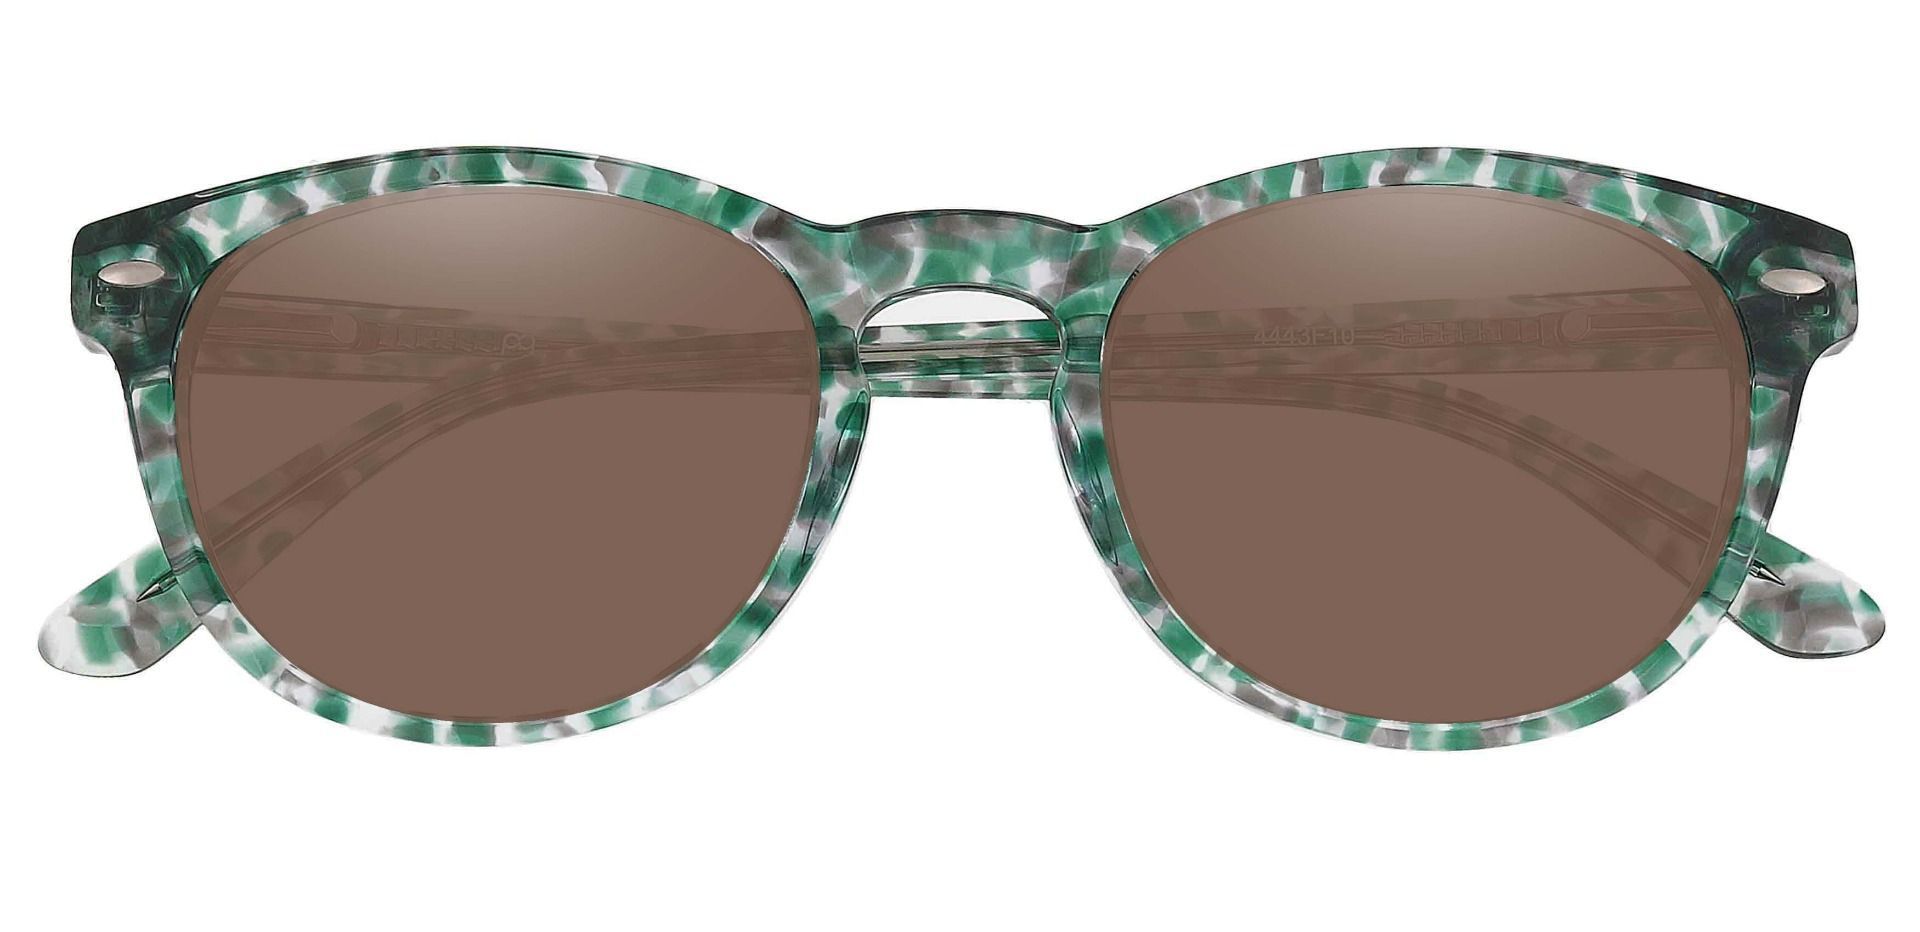 Laguna Oval Non-Rx Sunglasses - Green Frame With Brown Lenses